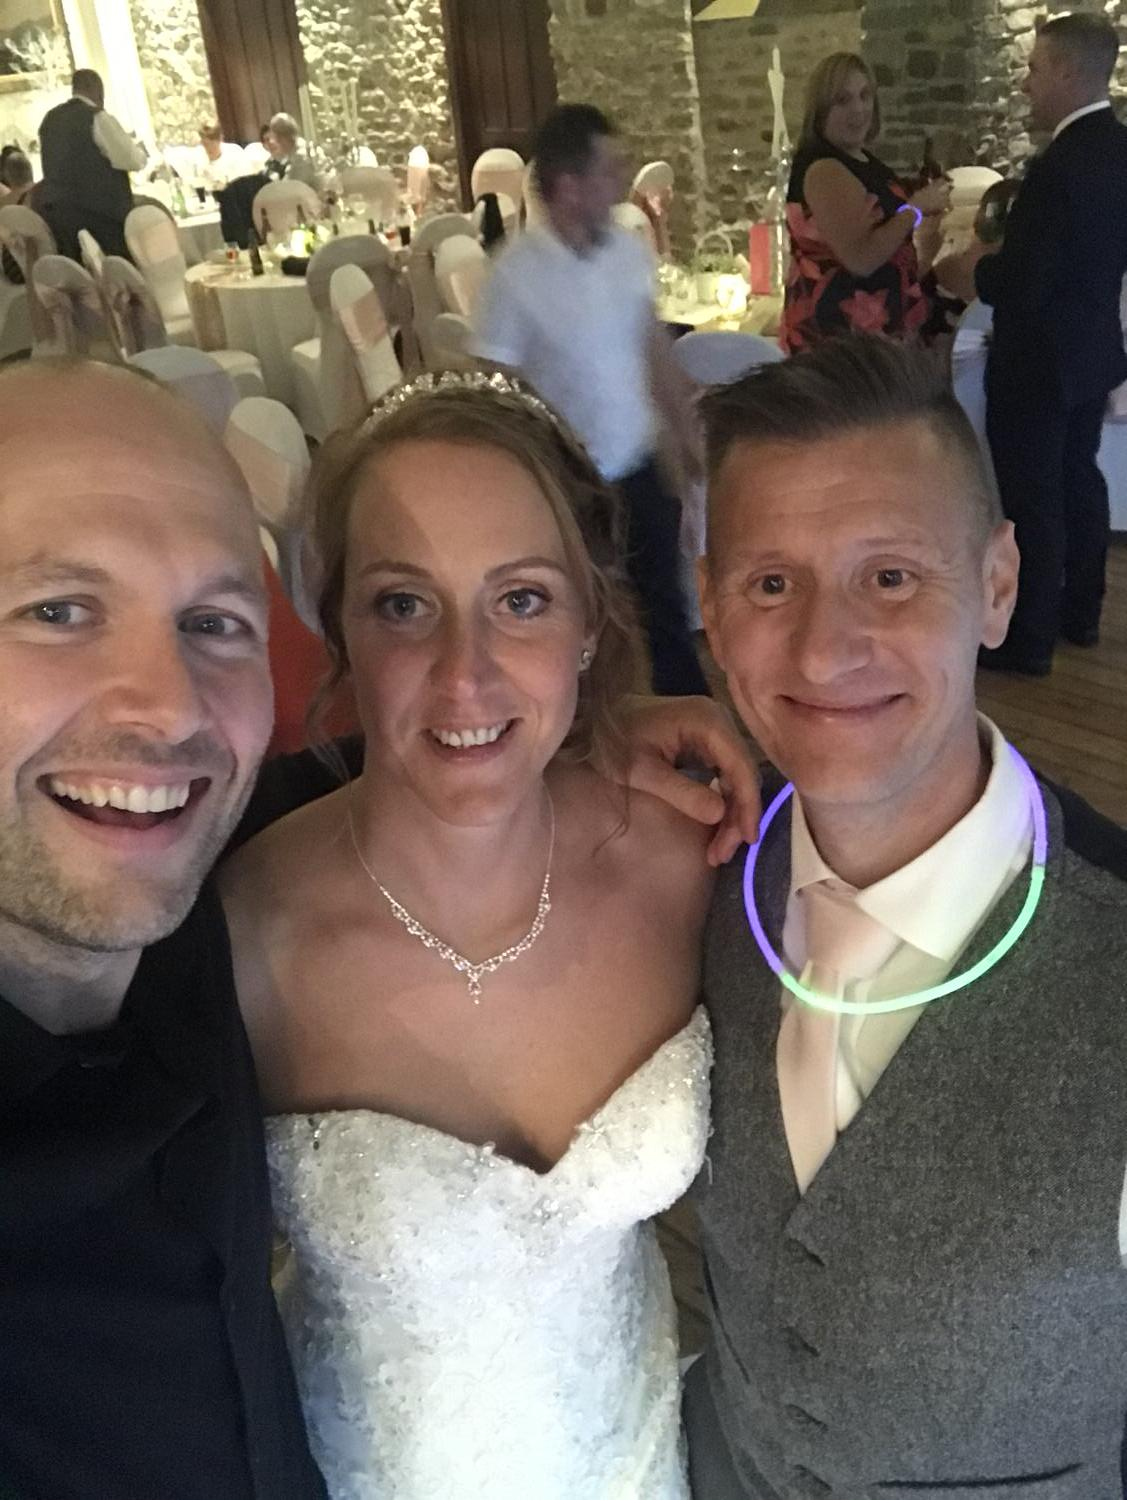 me and the happy couple at miskin manor